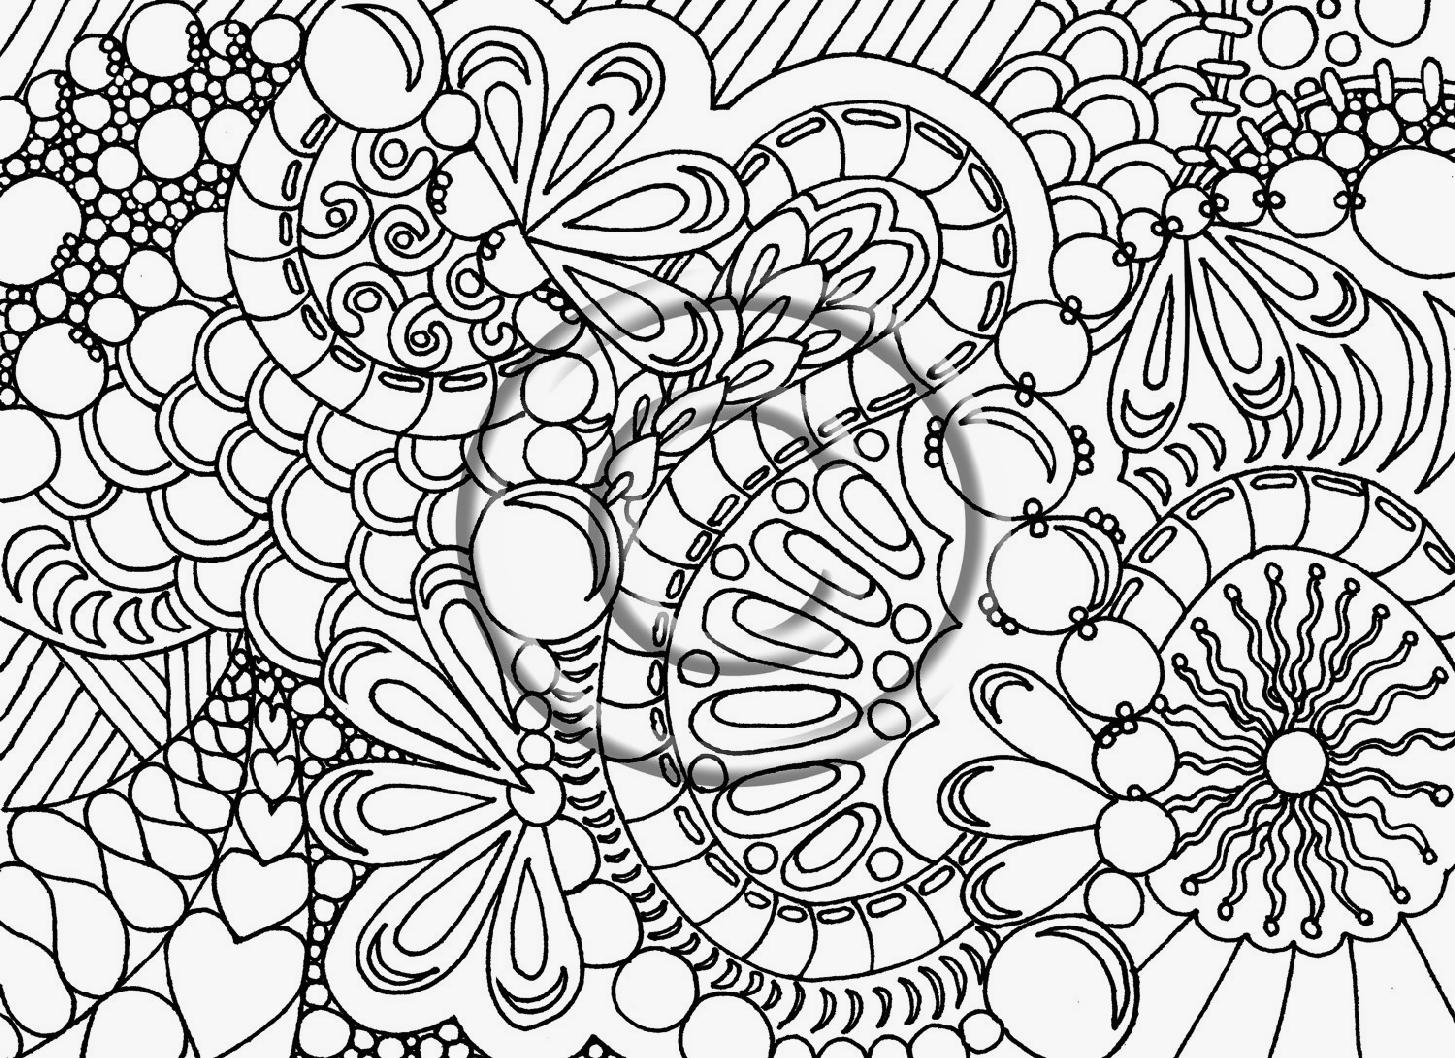 coloring adults pages large print coloring pages for adults at getcoloringscom adults coloring pages